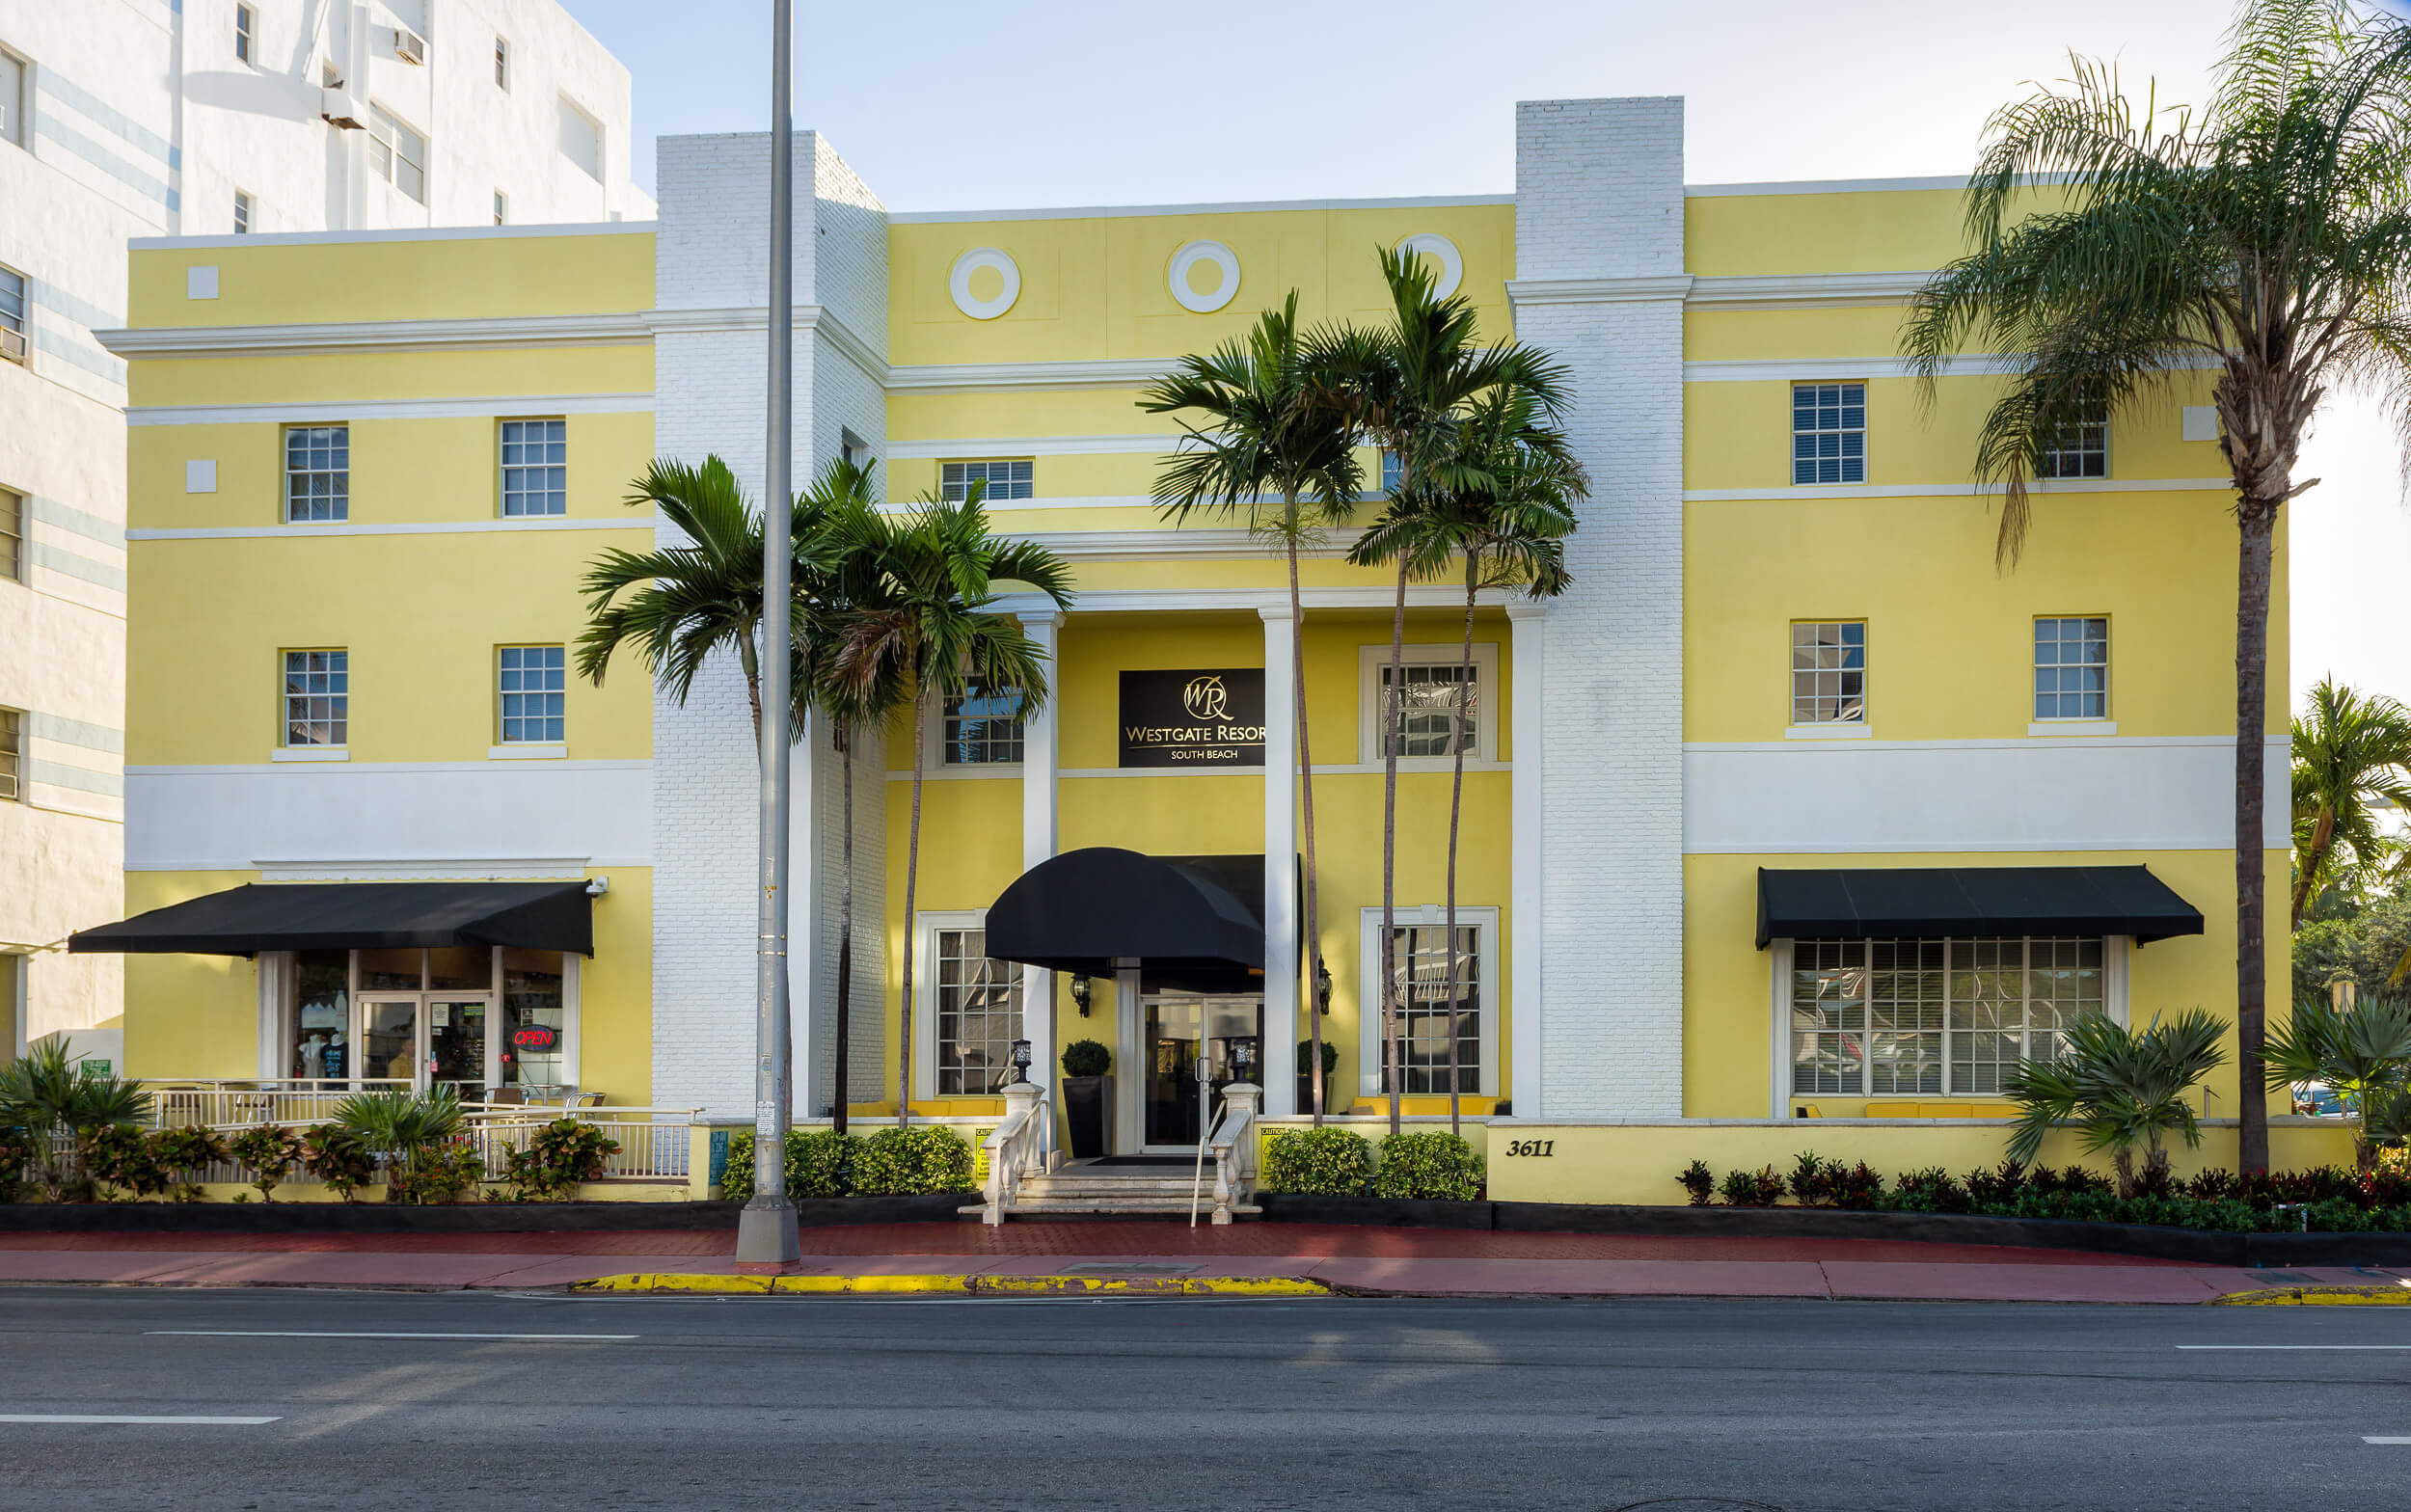 Resort exterior with palm trees at main entrance | Westgate South Beach Oceanfront Resort